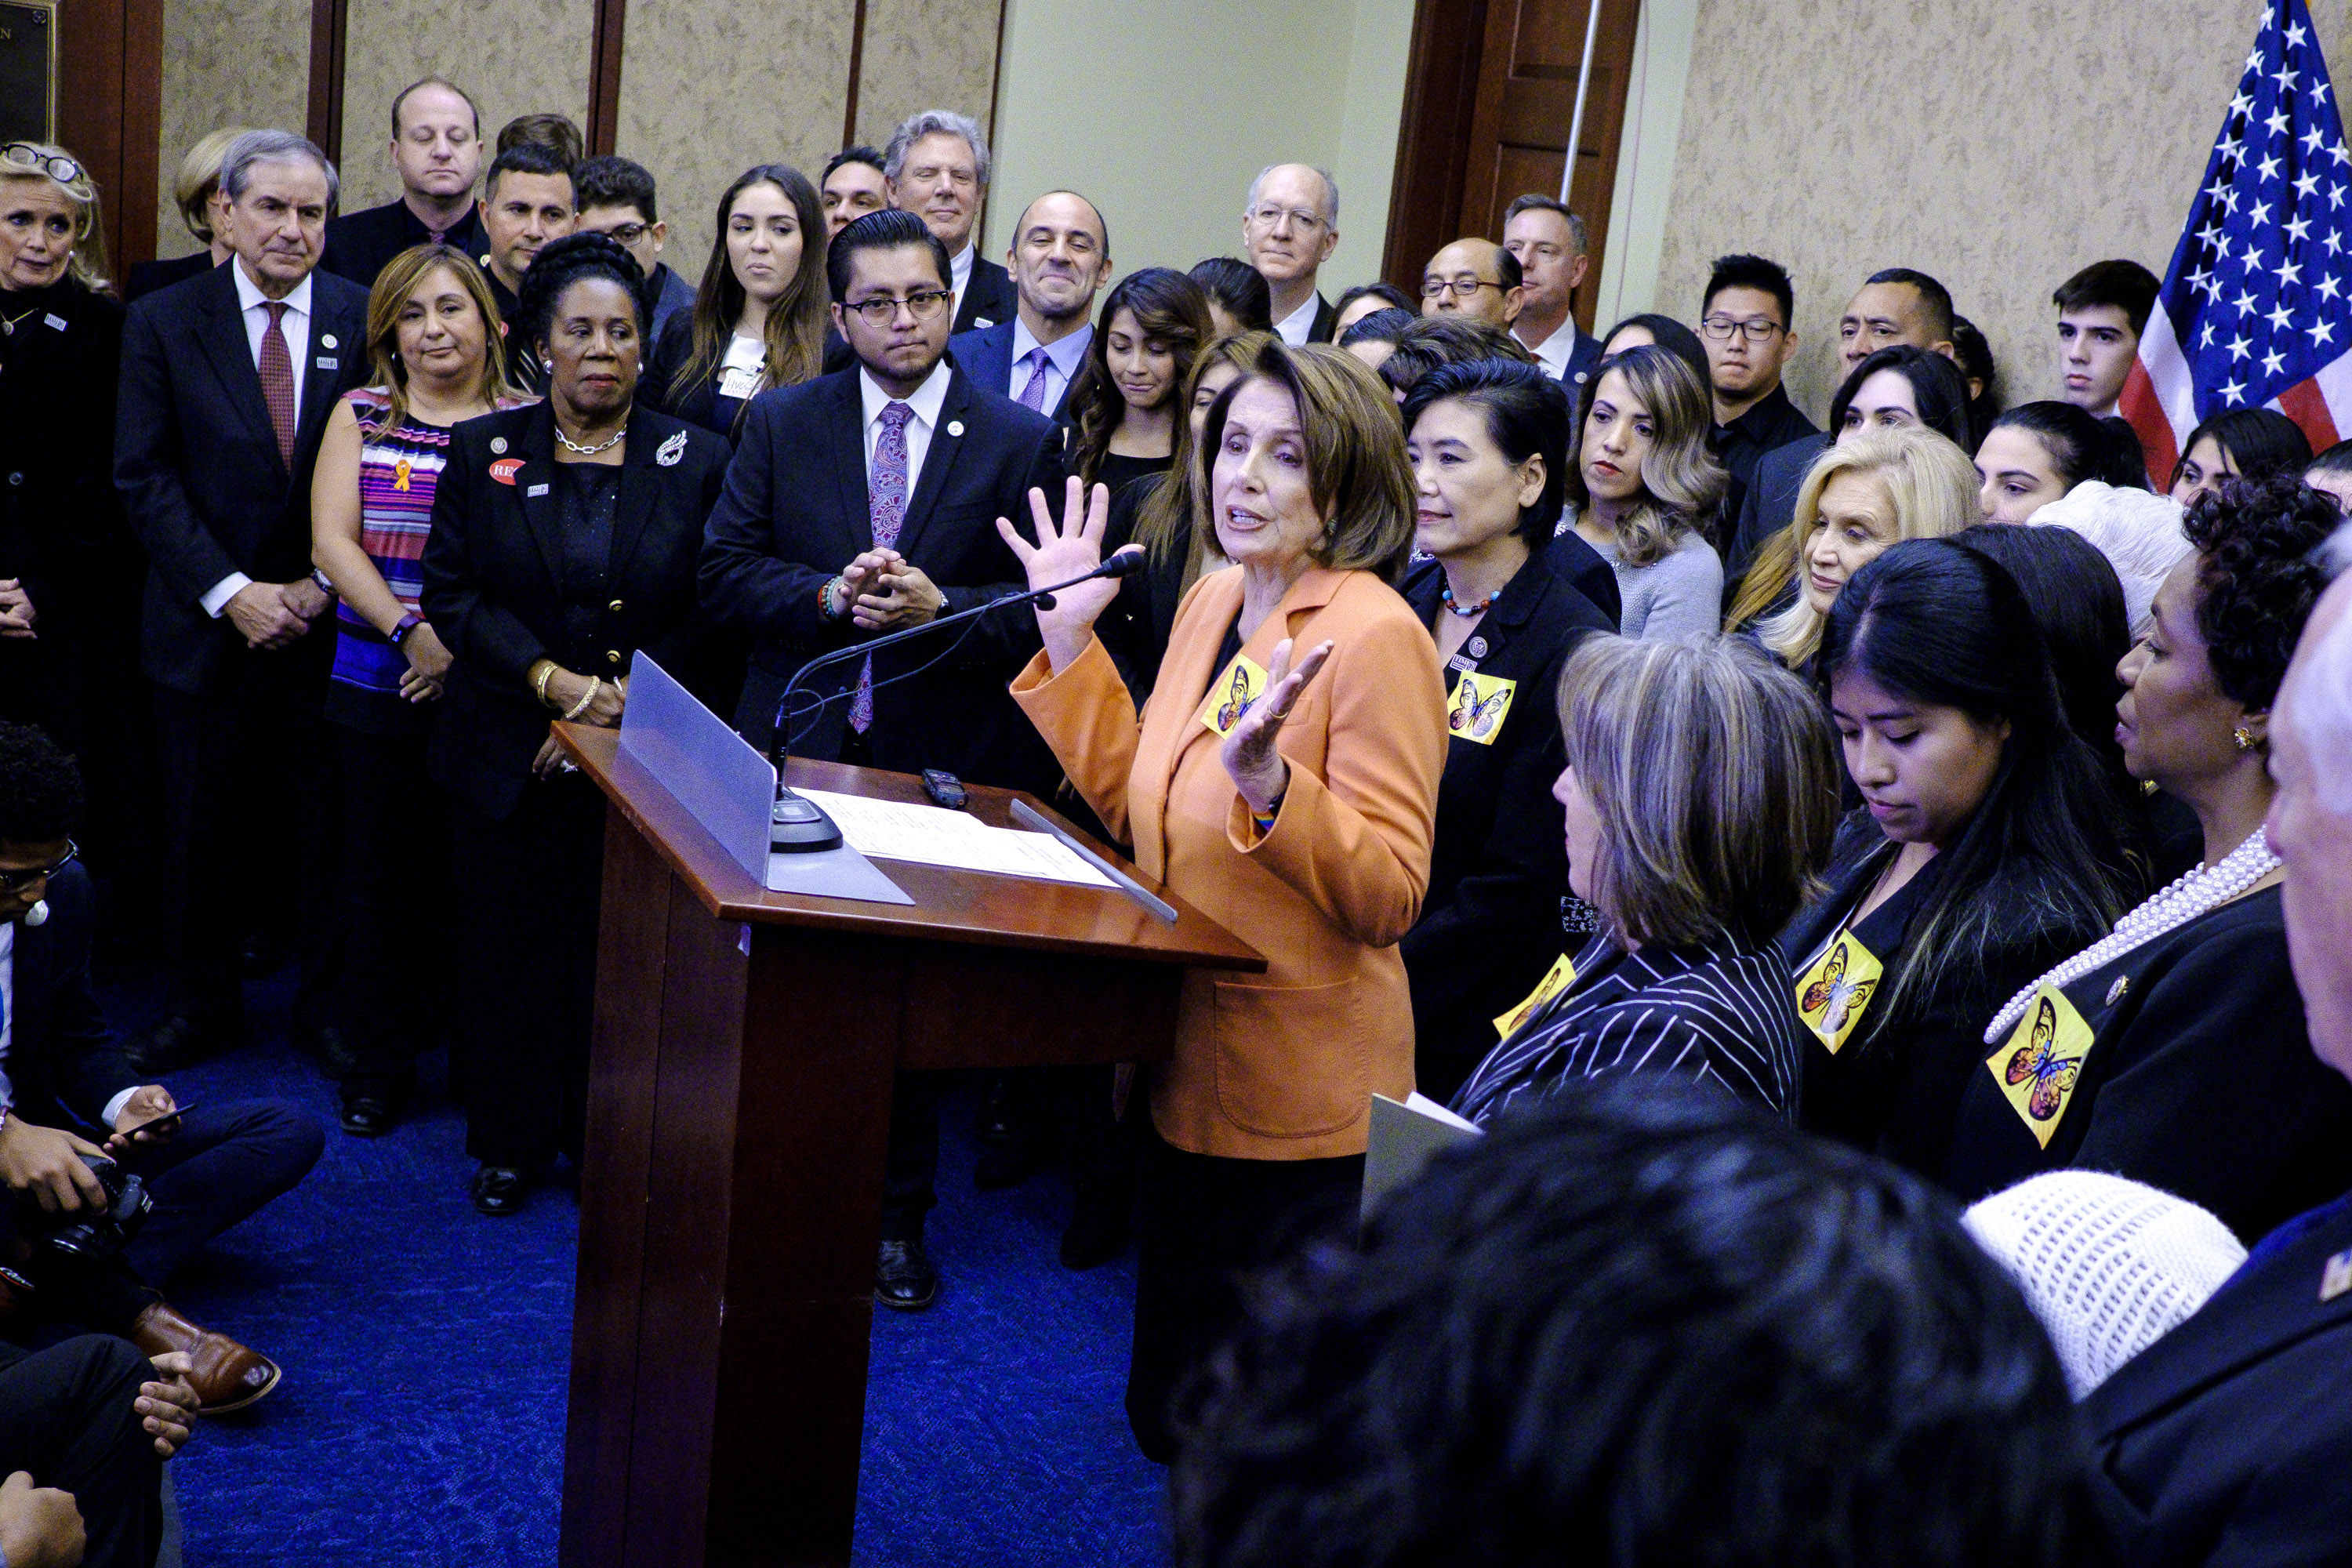 Here Are 7 DREAMer Stories Nancy Pelosi Shared During Her 8-Hour House Speech